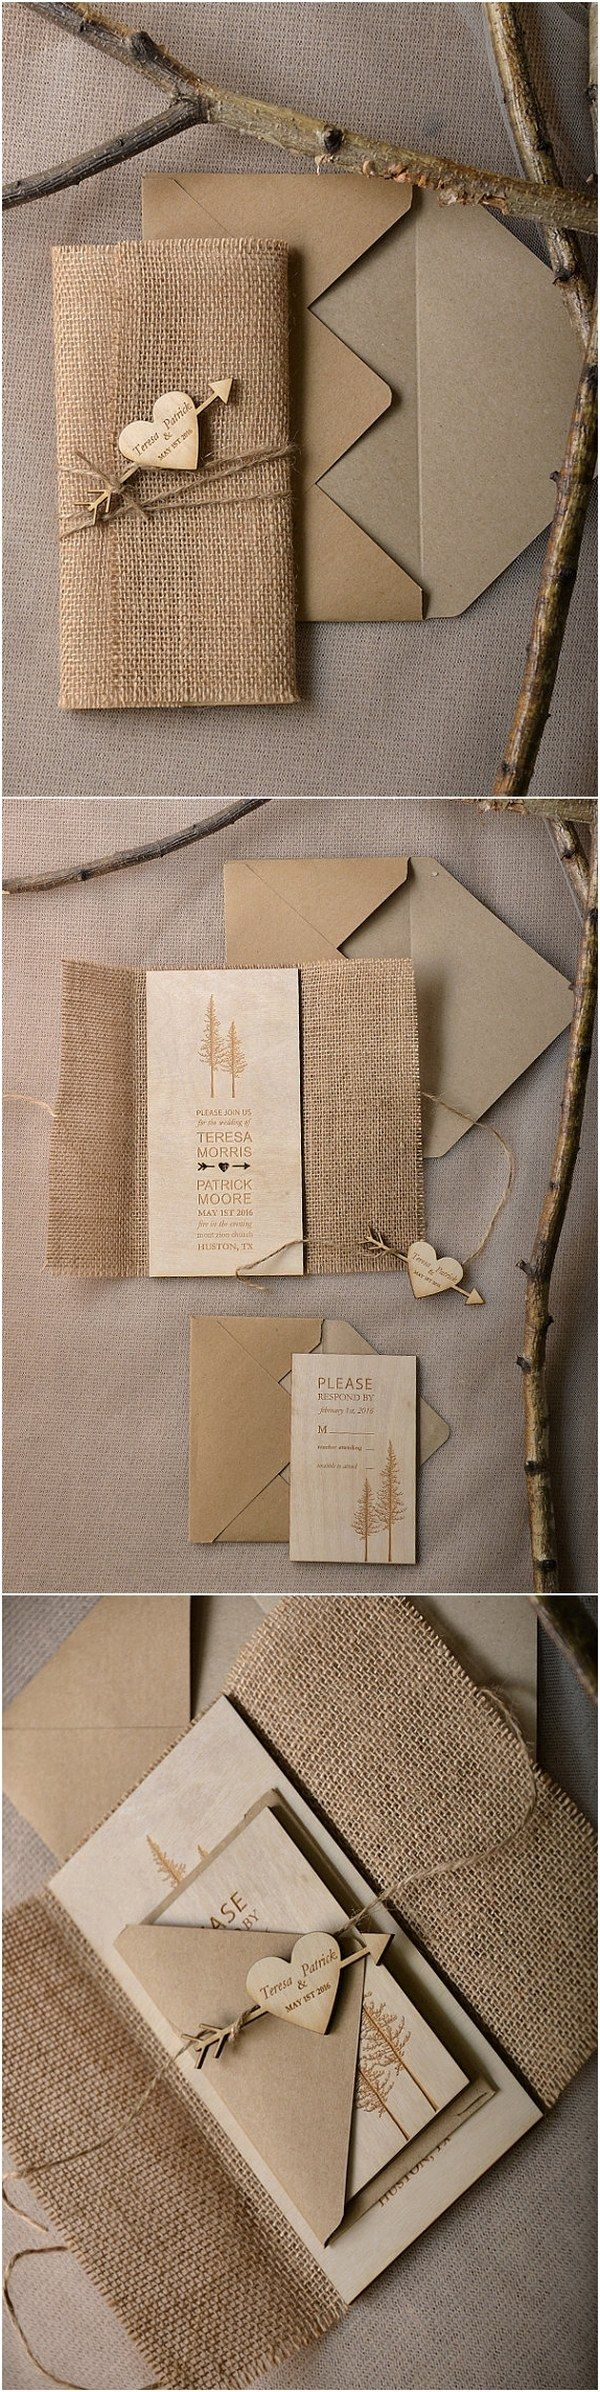 Rustic country burlap string lights lace wedding card - Rustic Country Burlap And Real Wood Wedding Invitations Rusticwedding Countrywedding Dpf